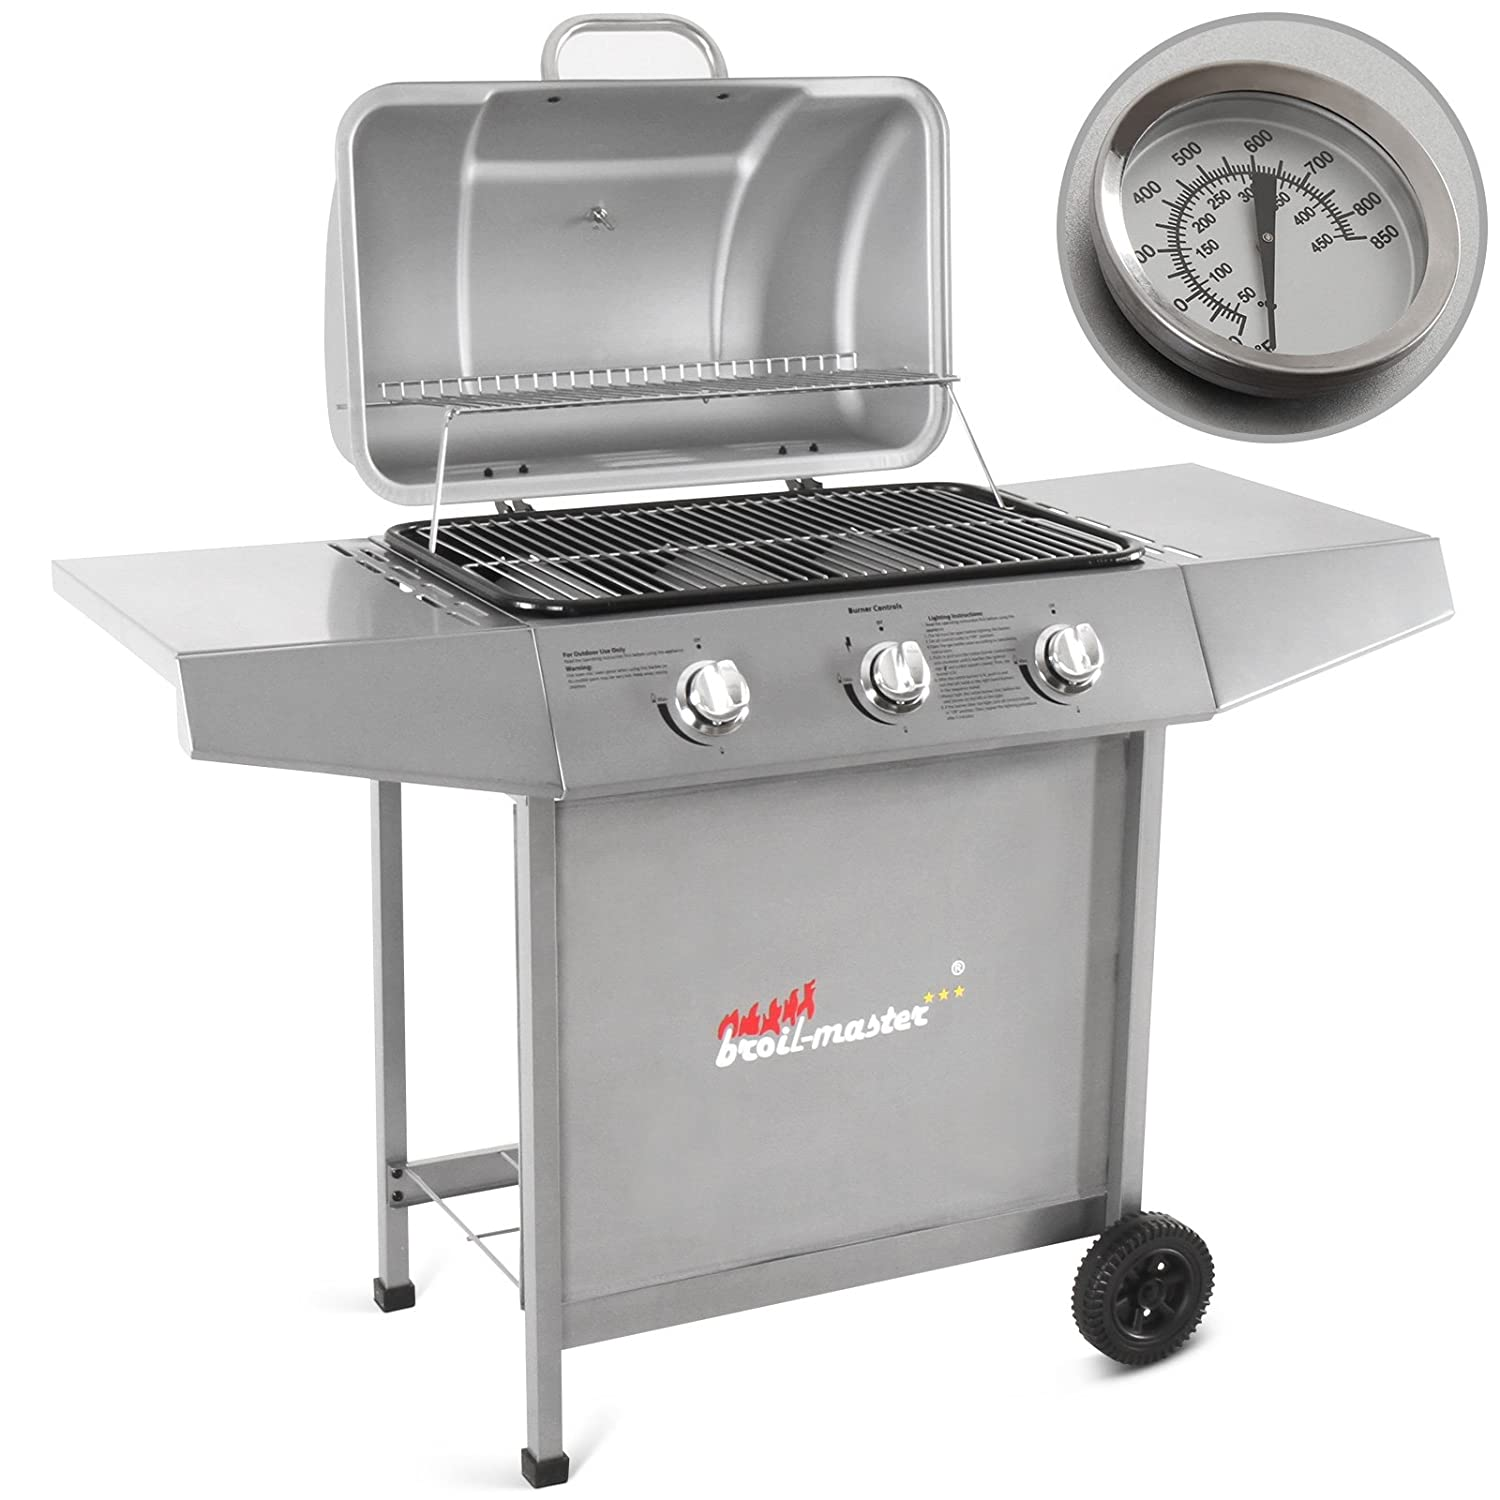 broil-master® BBQ Gas Grill Steel Barbecue in Silver or Black Power ca. 7,5 kW (3 x 2,5 kW) FF-Europe